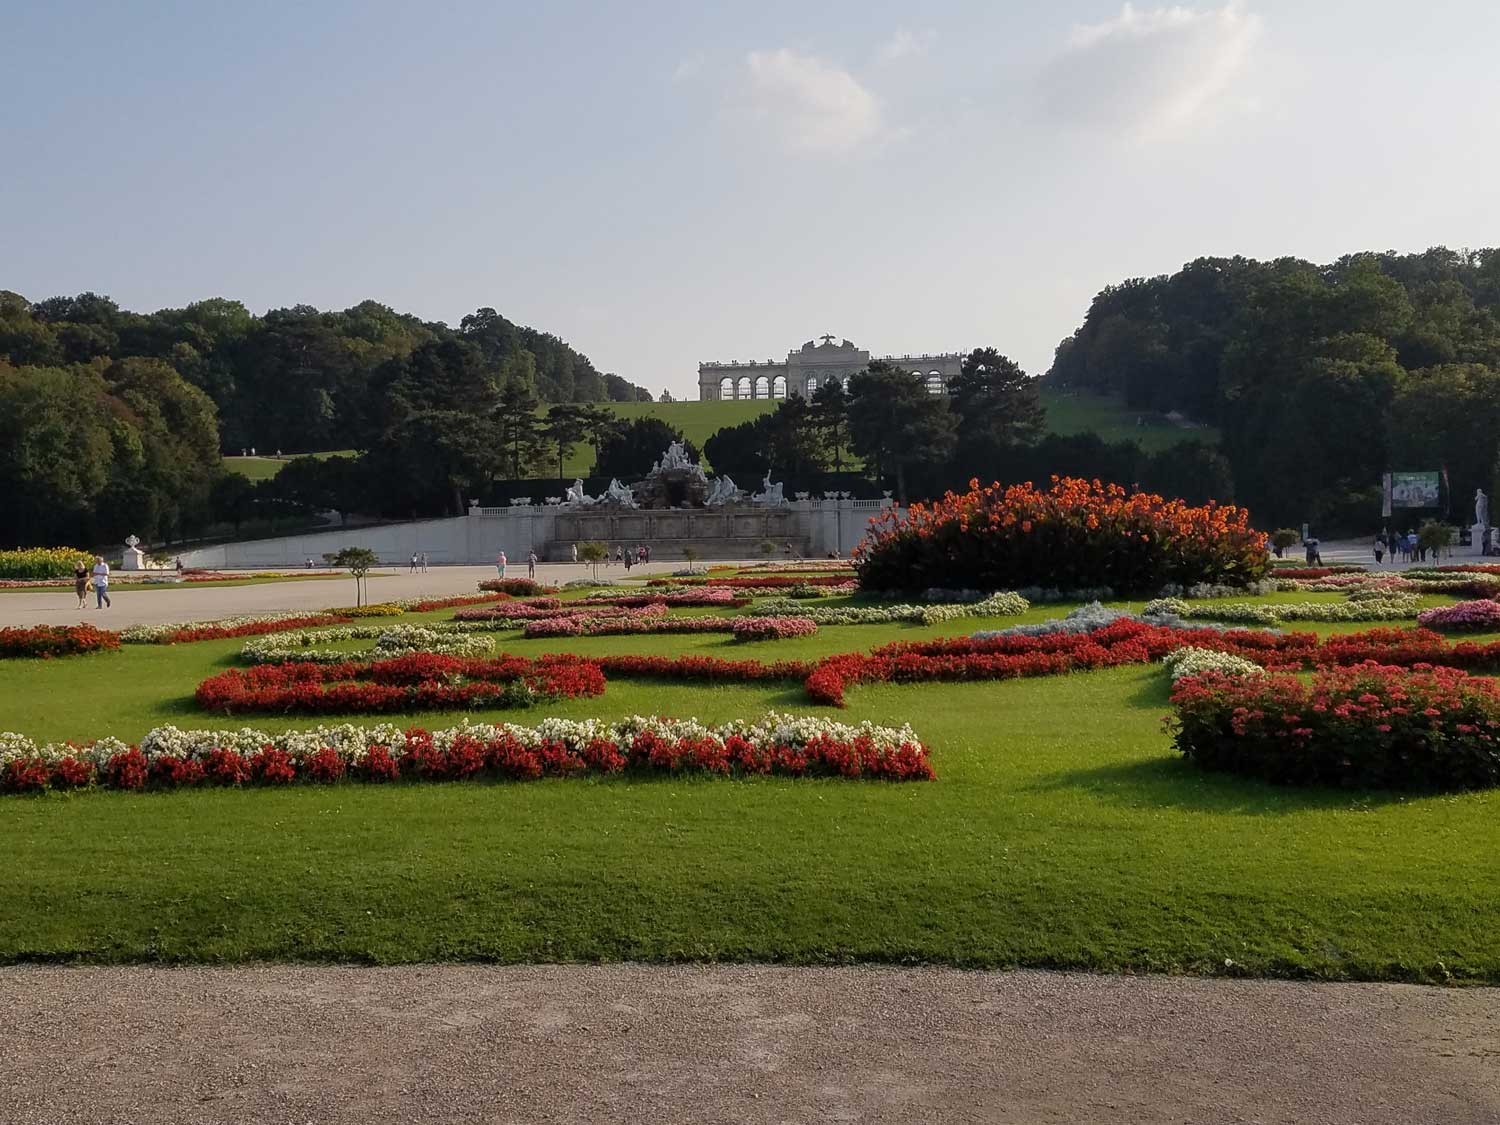 Strolling through the meticulous gardens at the Schonbrunn, the Habsburgs' summer palace